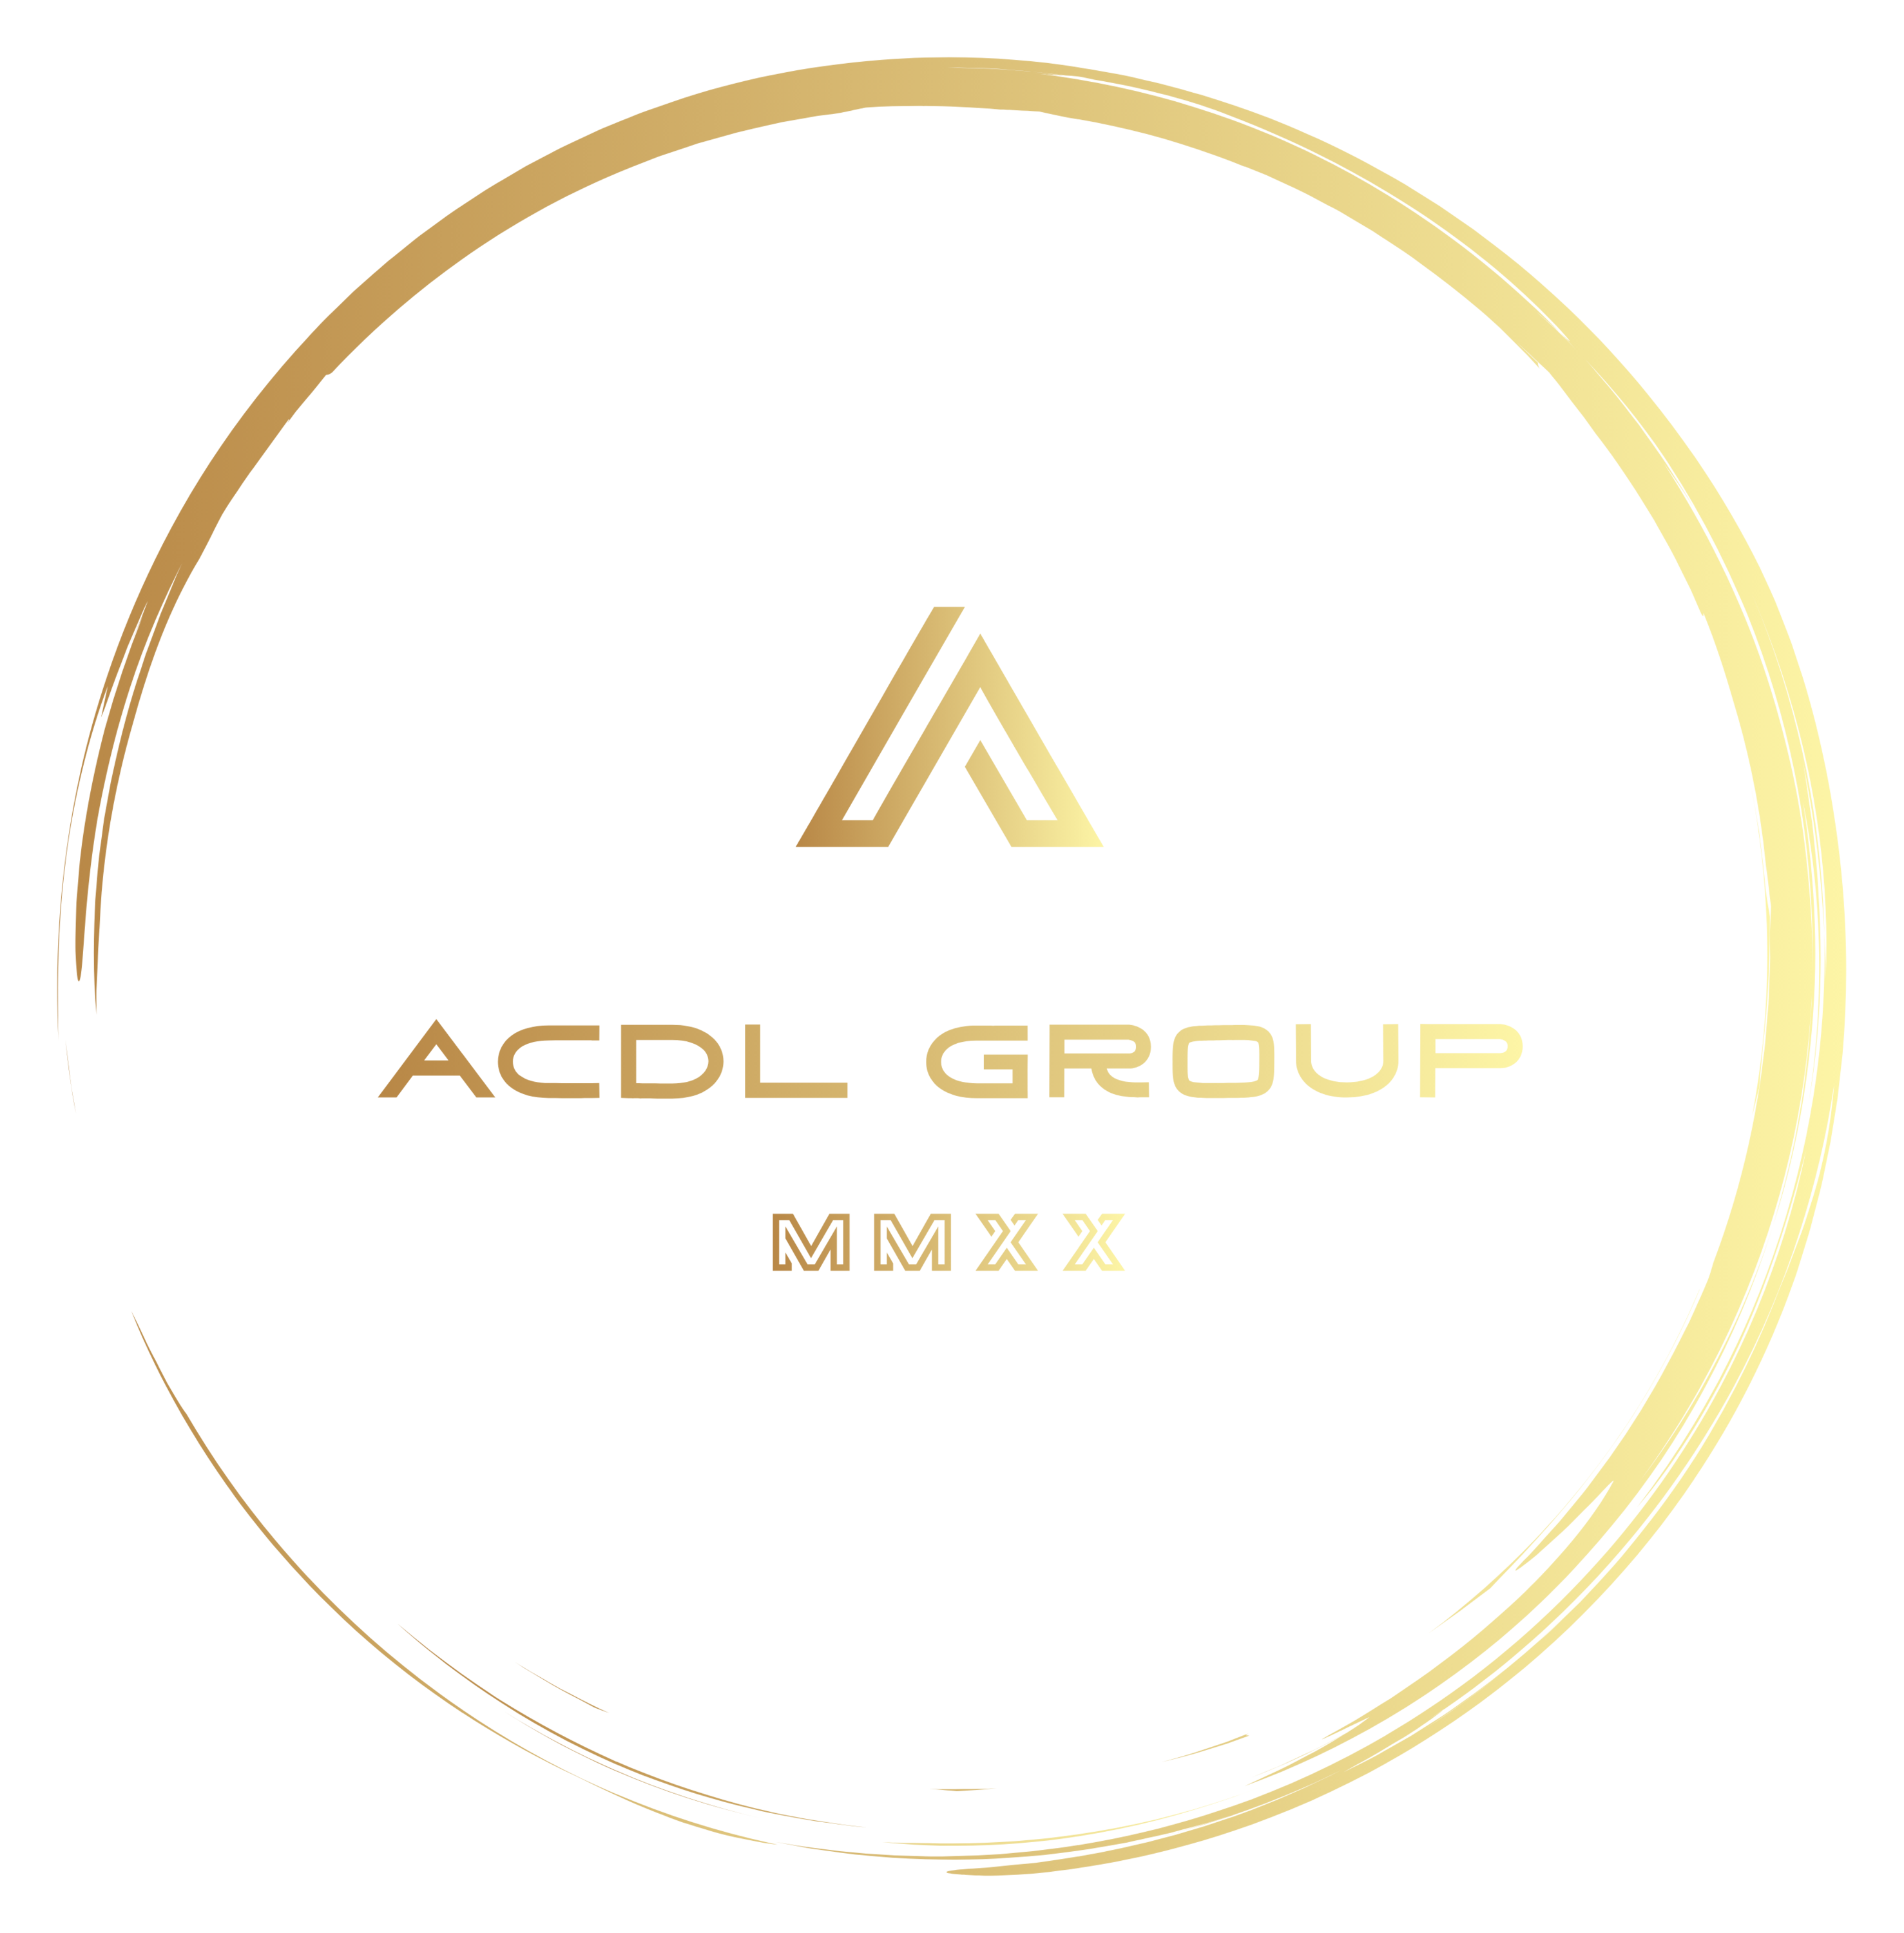 ACDL Group